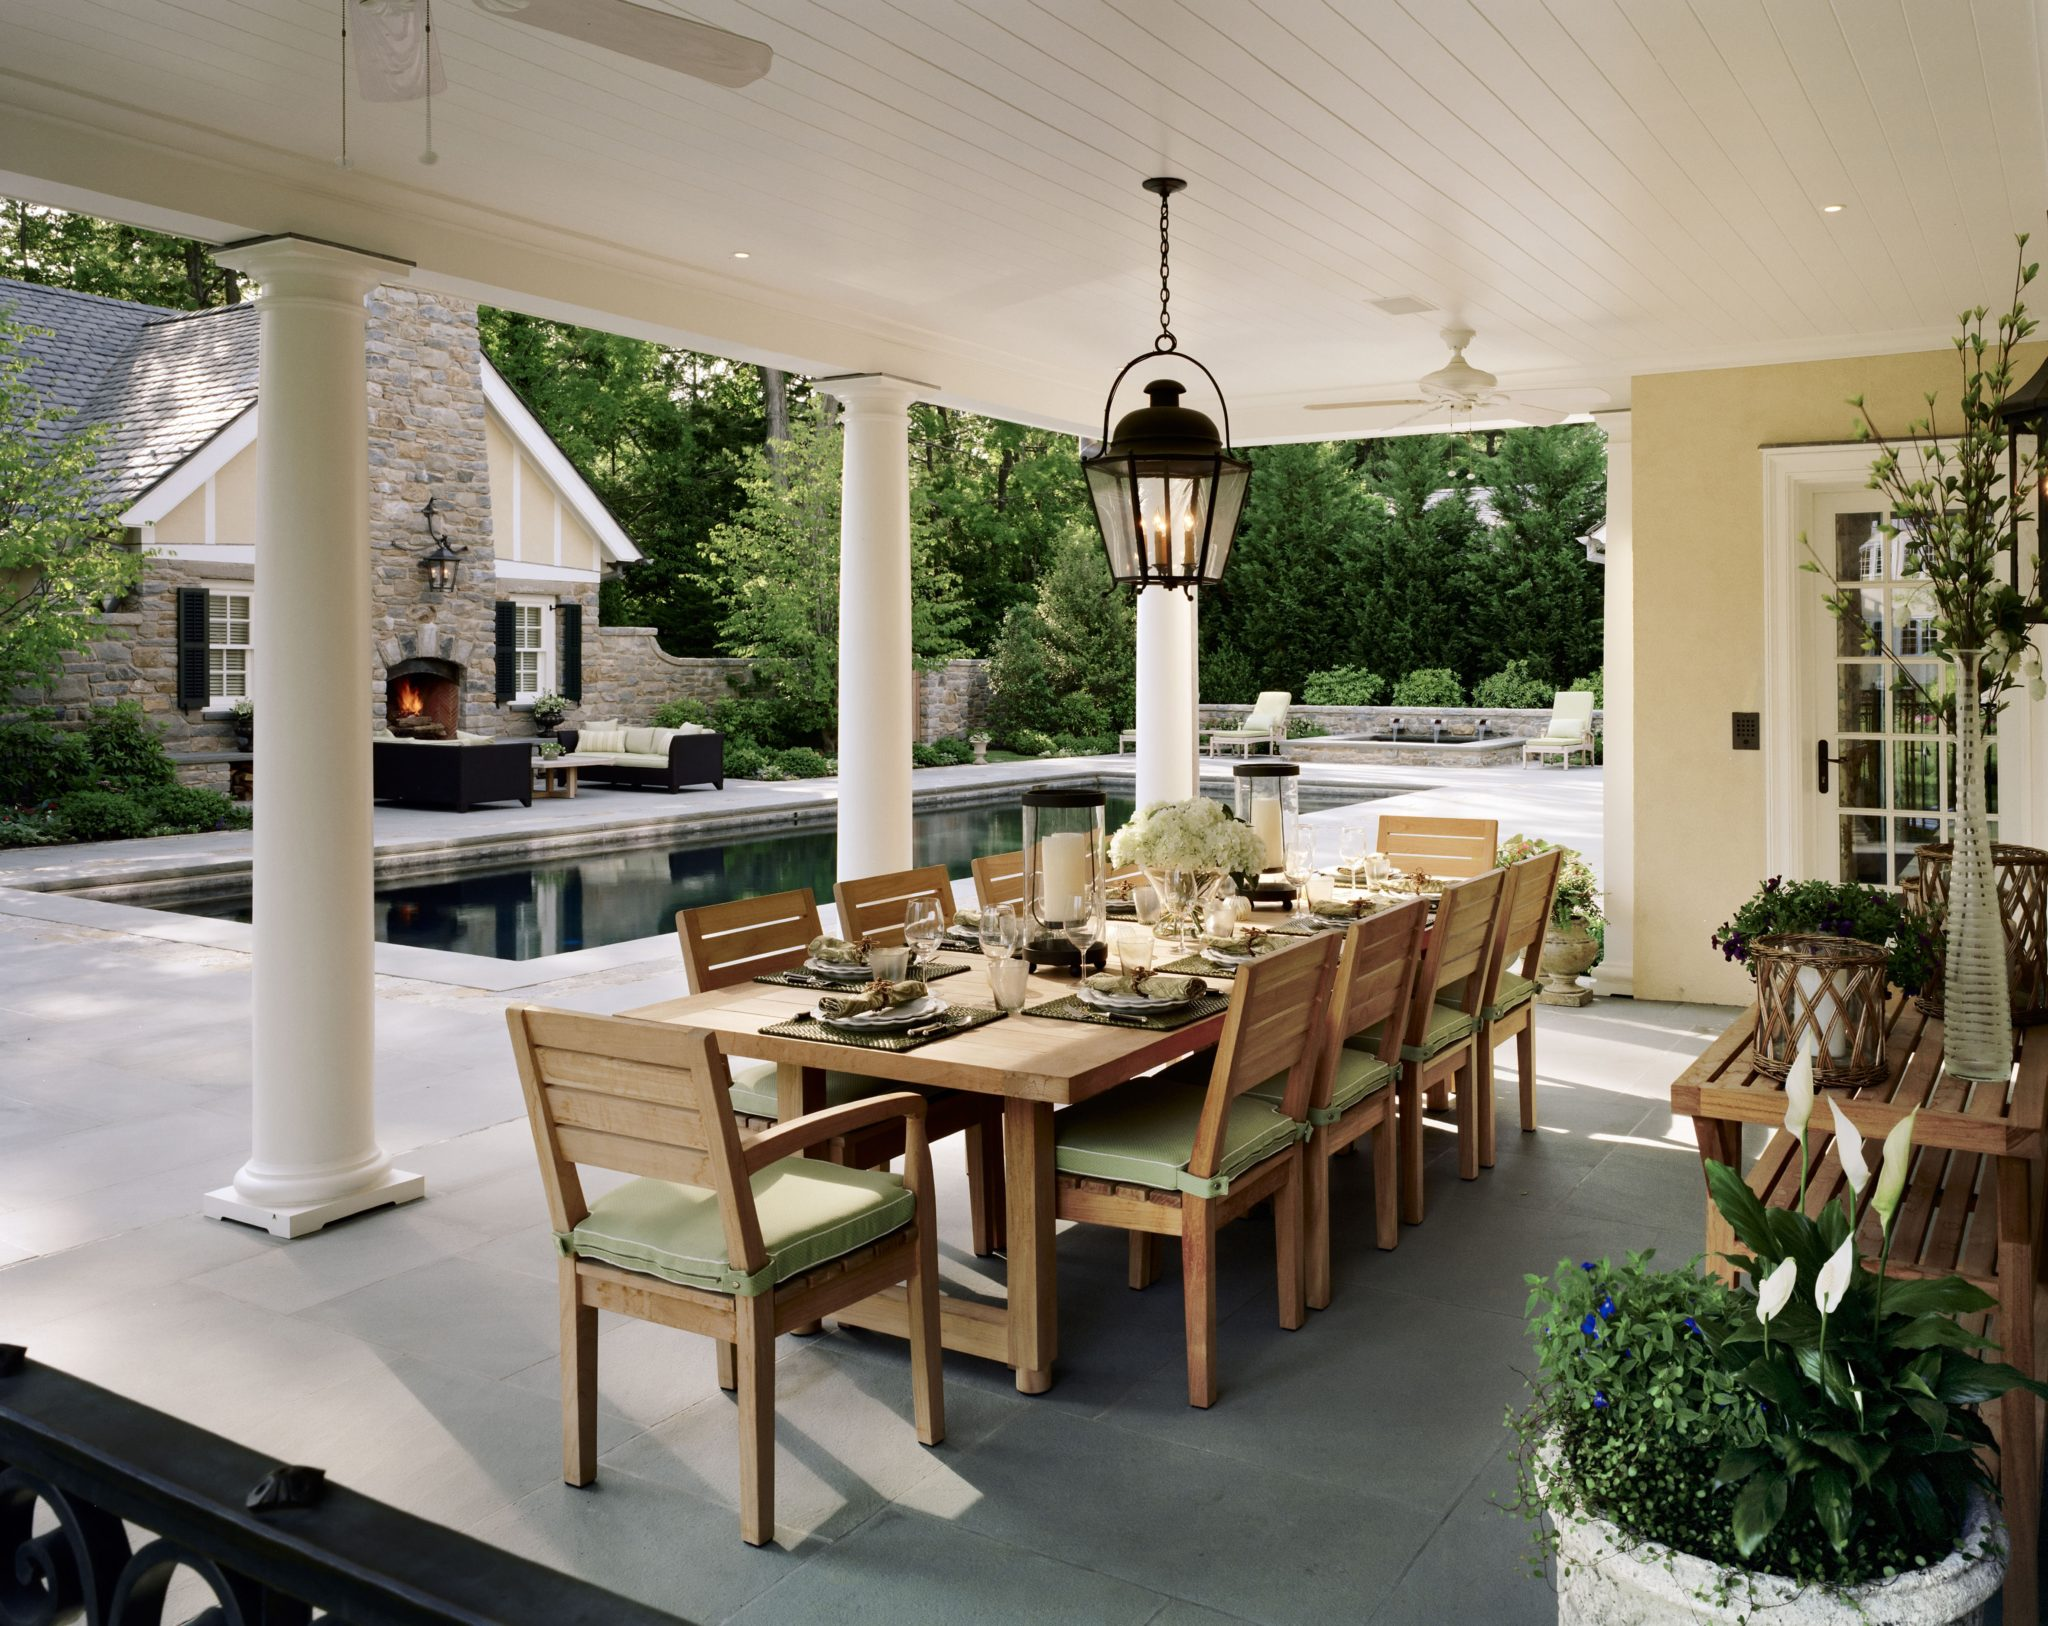 Westchester stucco colonial dining porch by Charles Hilton Architects